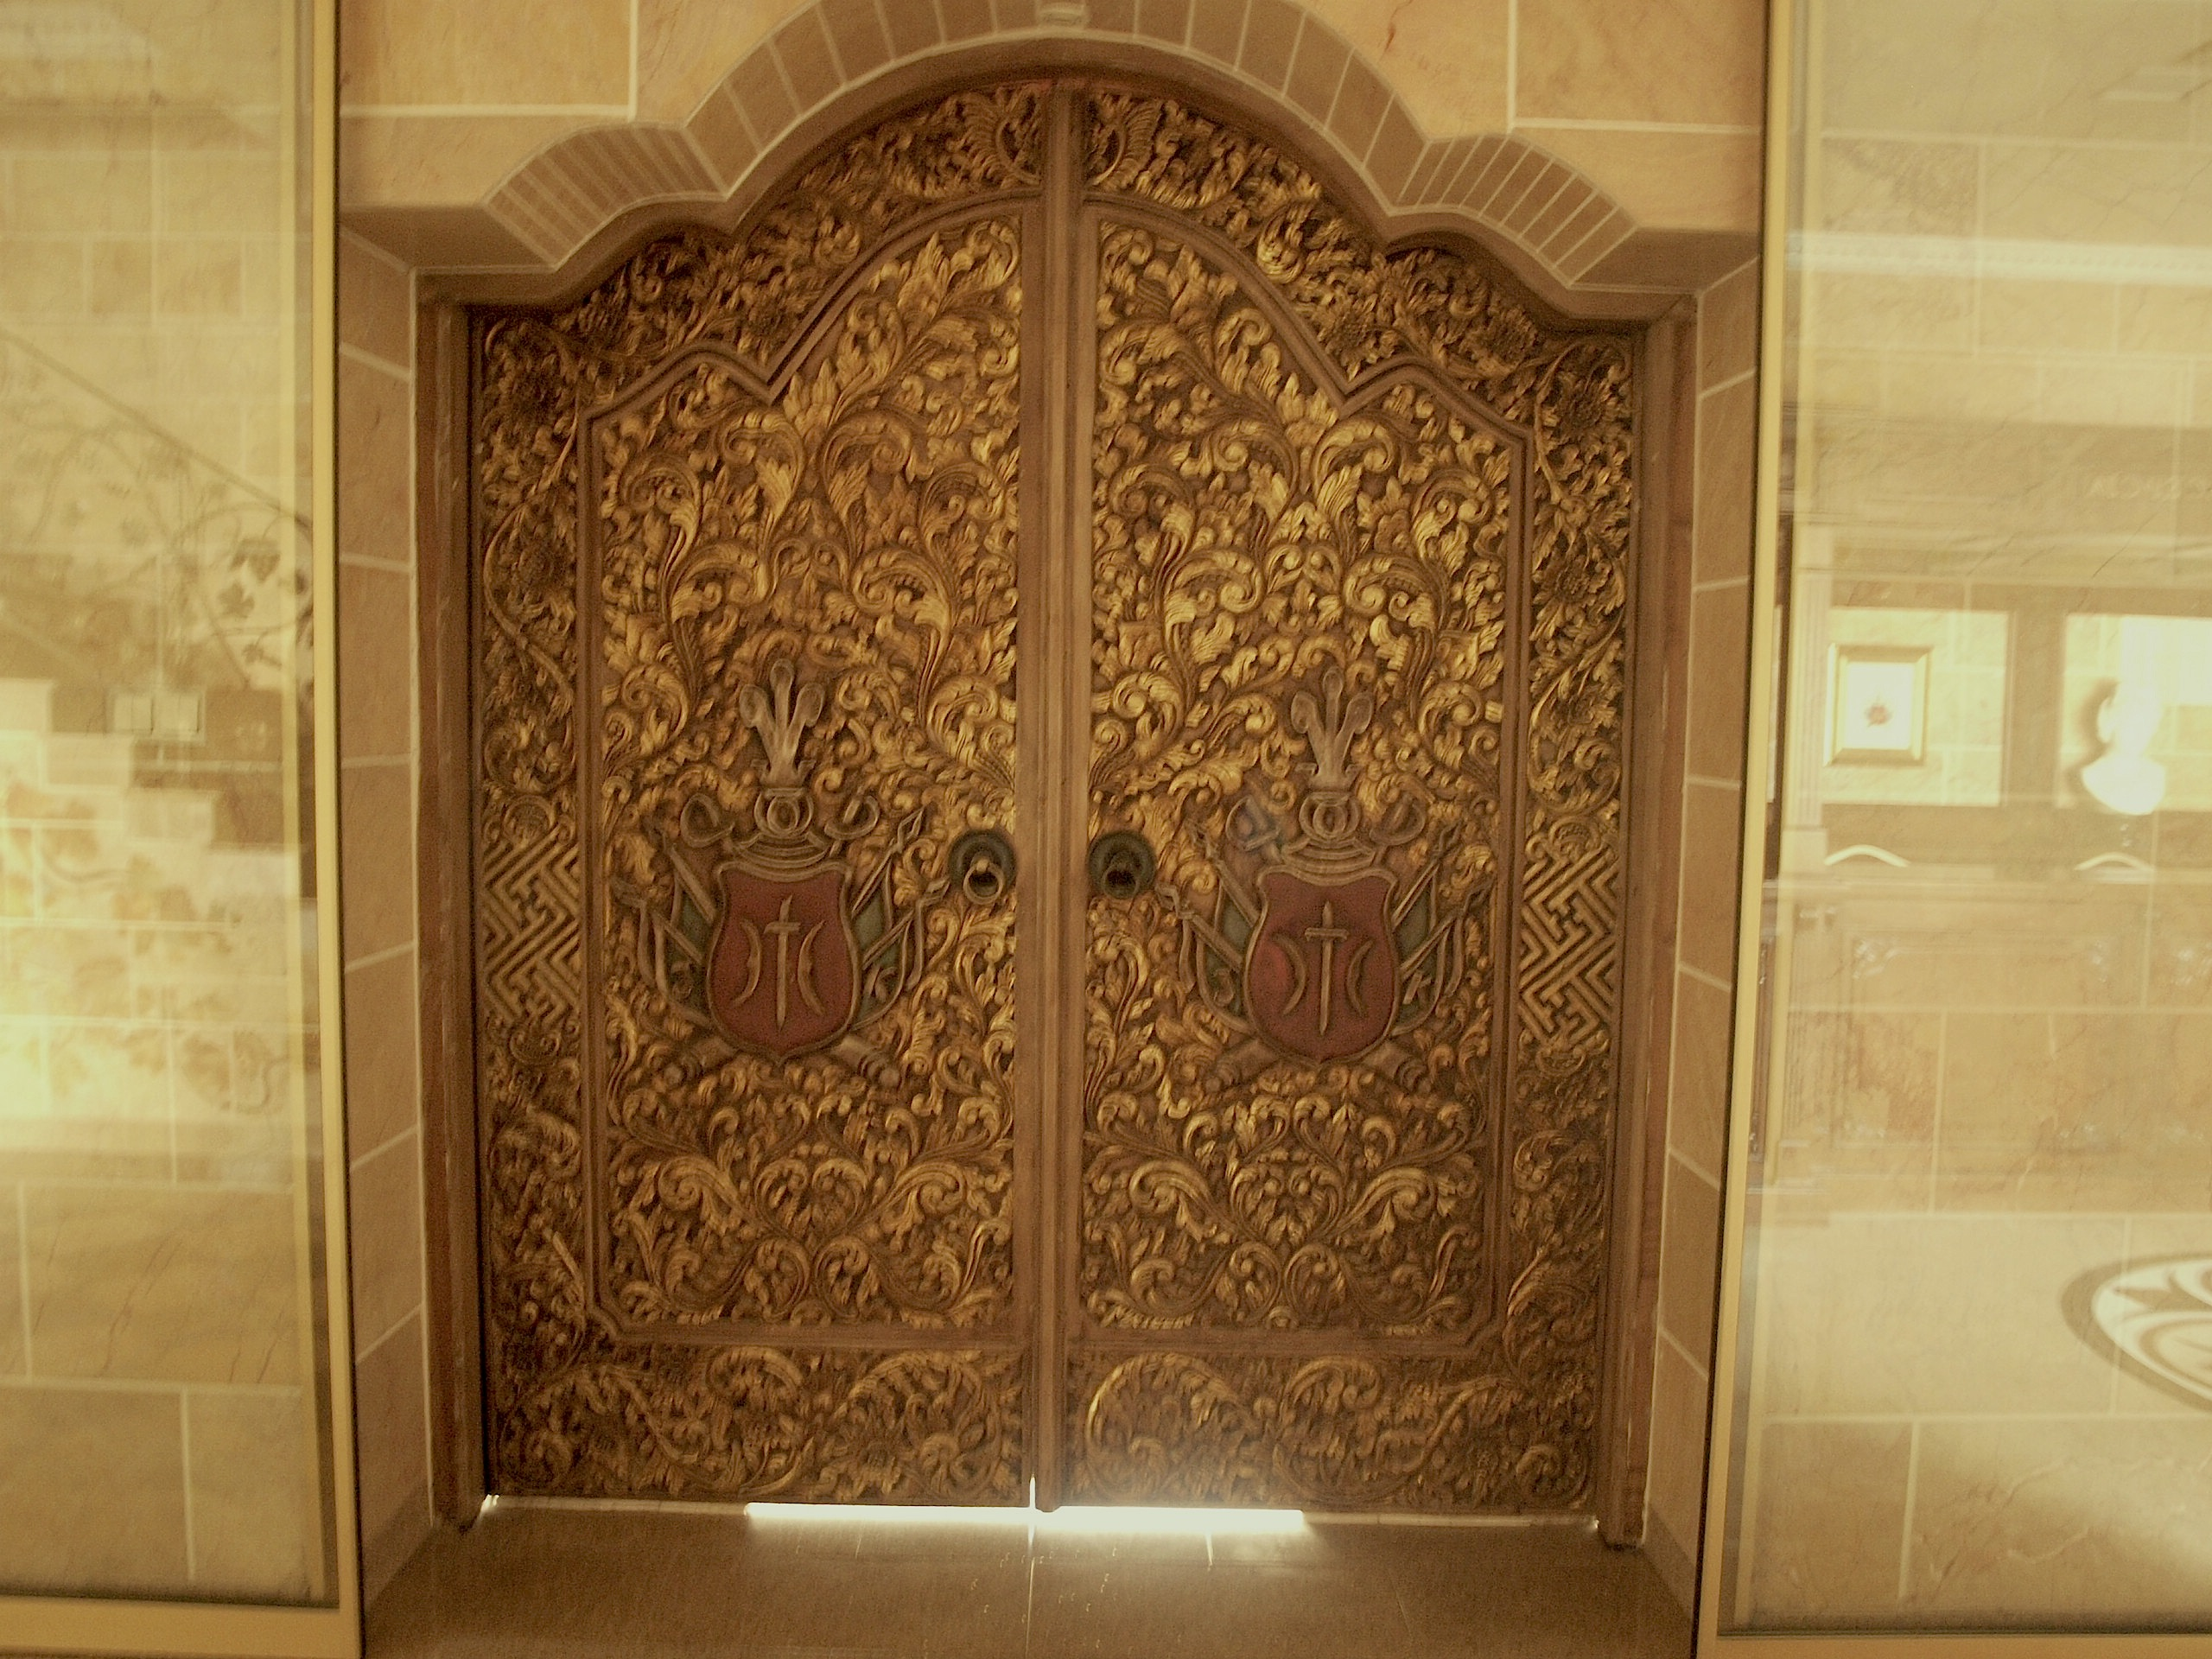 Handmade doors entering the Ostoya Palace of today owned by Rylski family